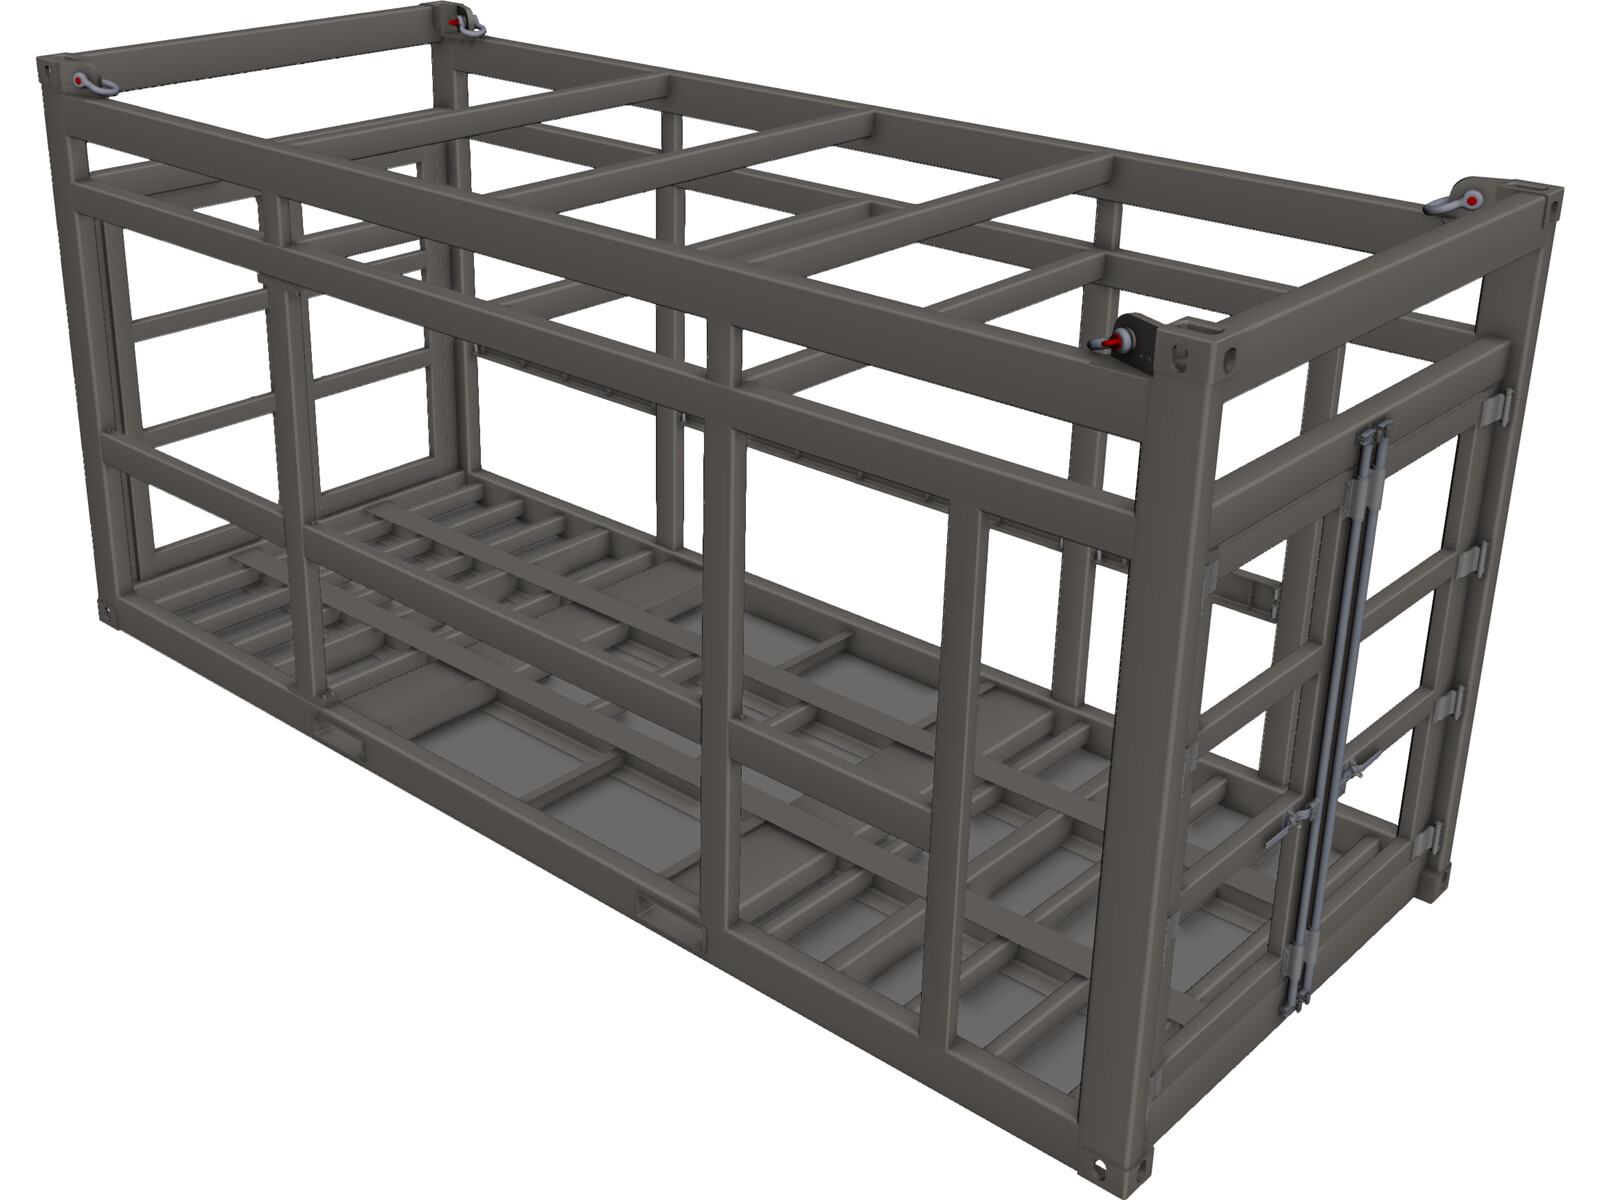 Offshore Container Frame 3d Cad Model 3d Cad Browser